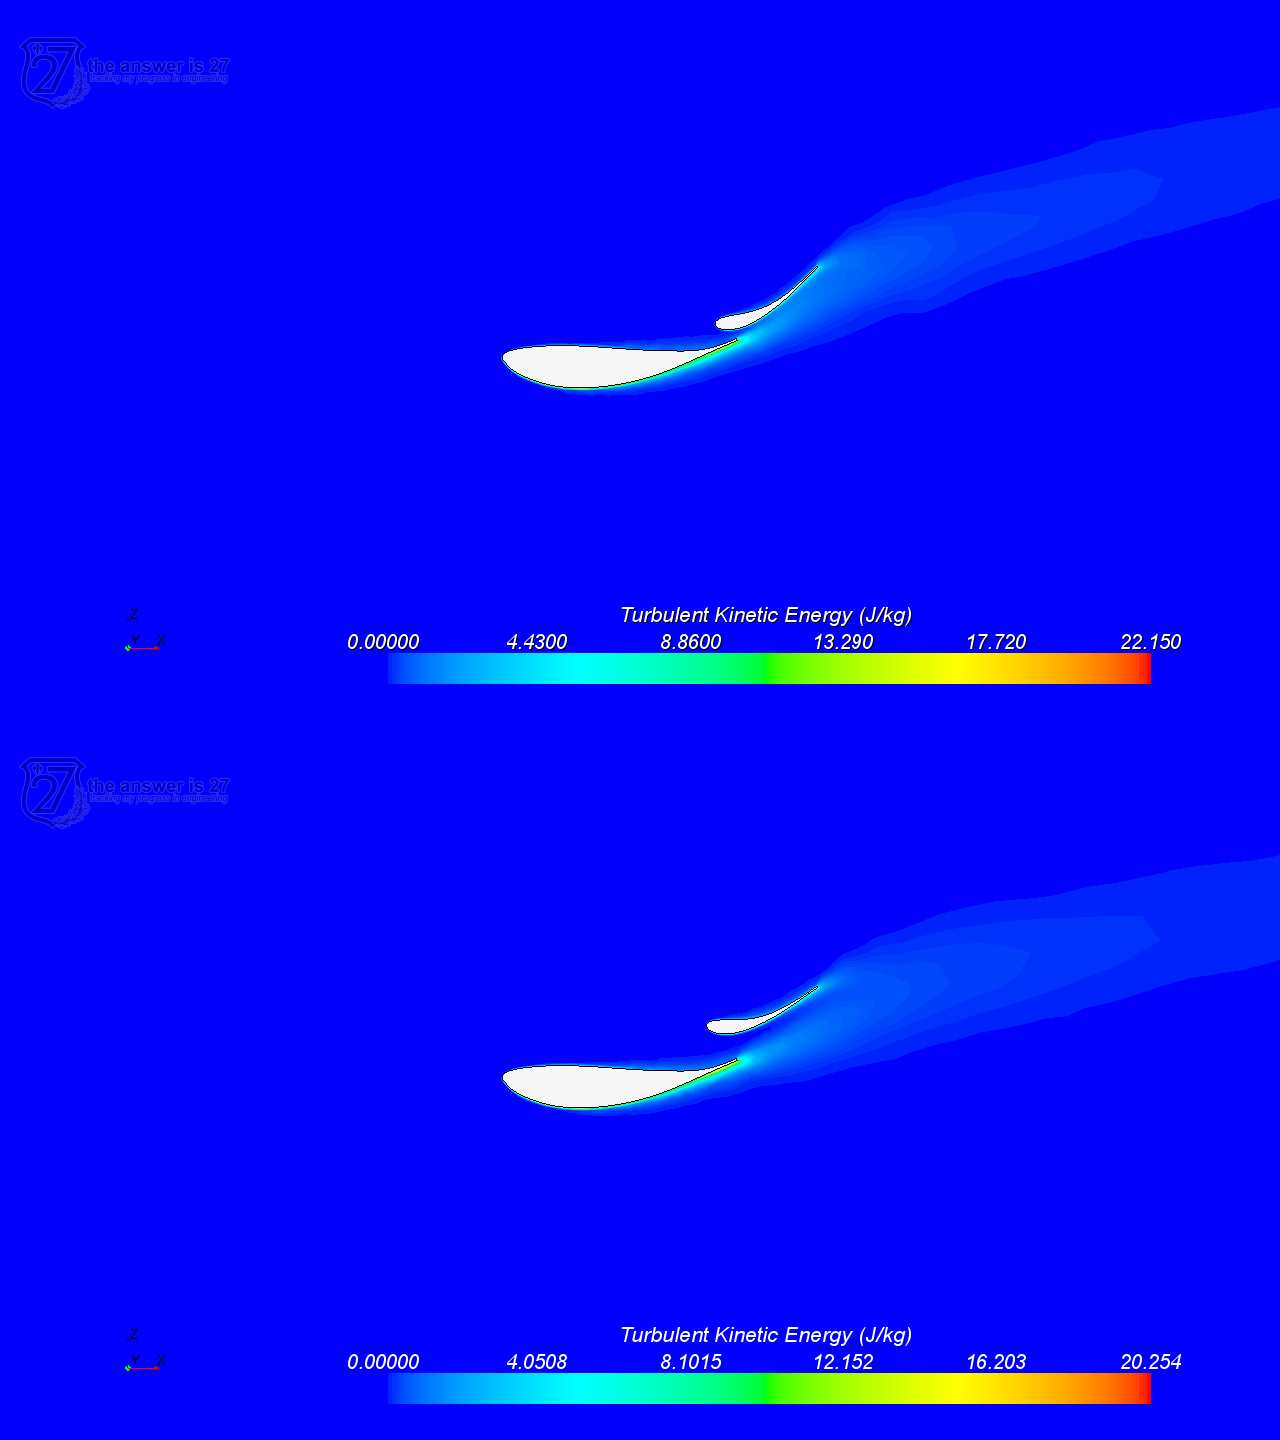 Figure 4. Turbulent kinetic energy at DRS OFF (above) and at flap pivoted 10 degrees (DRS ON, below).